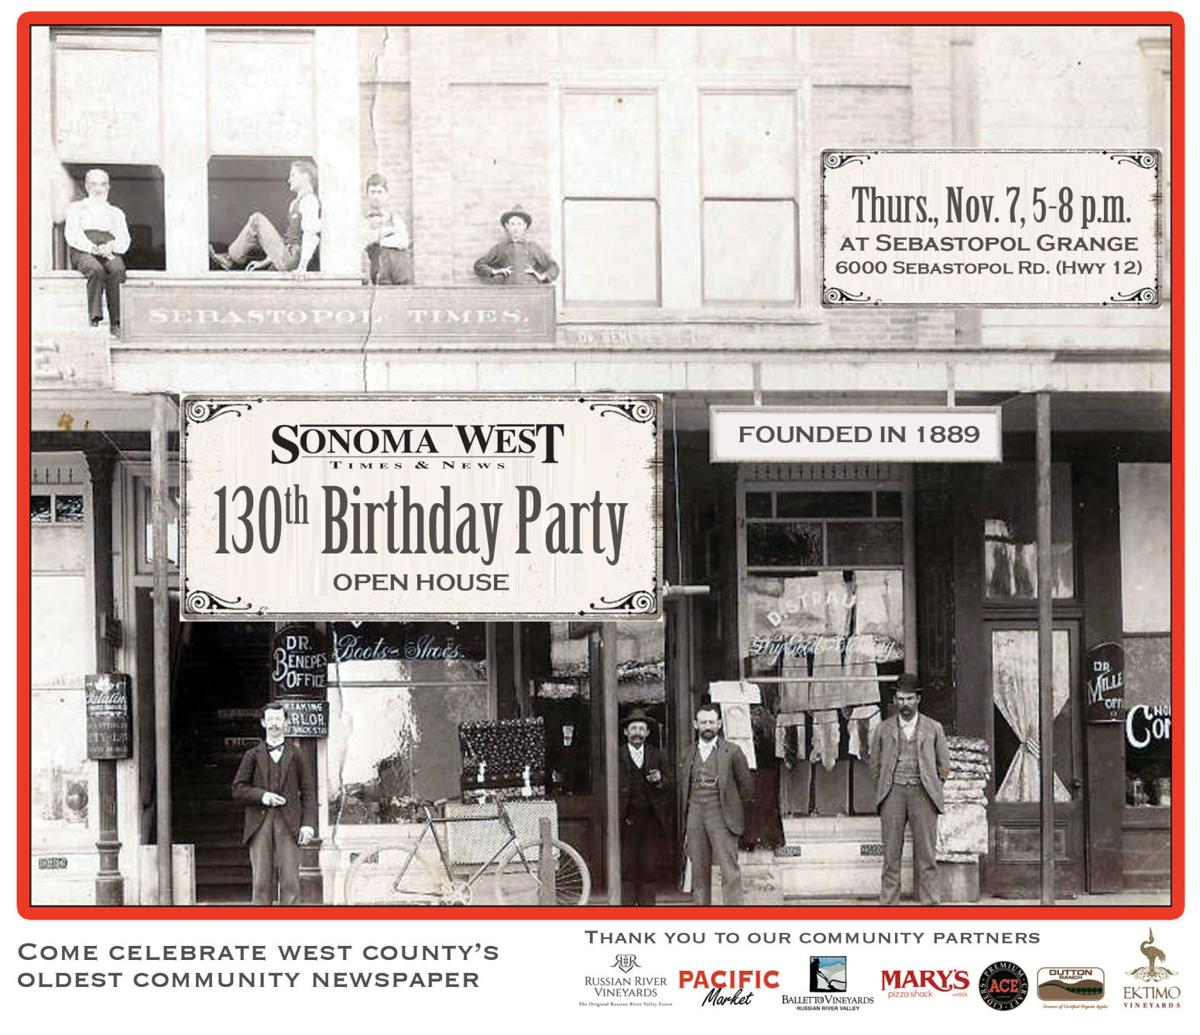 Invitation to 130th Birthday